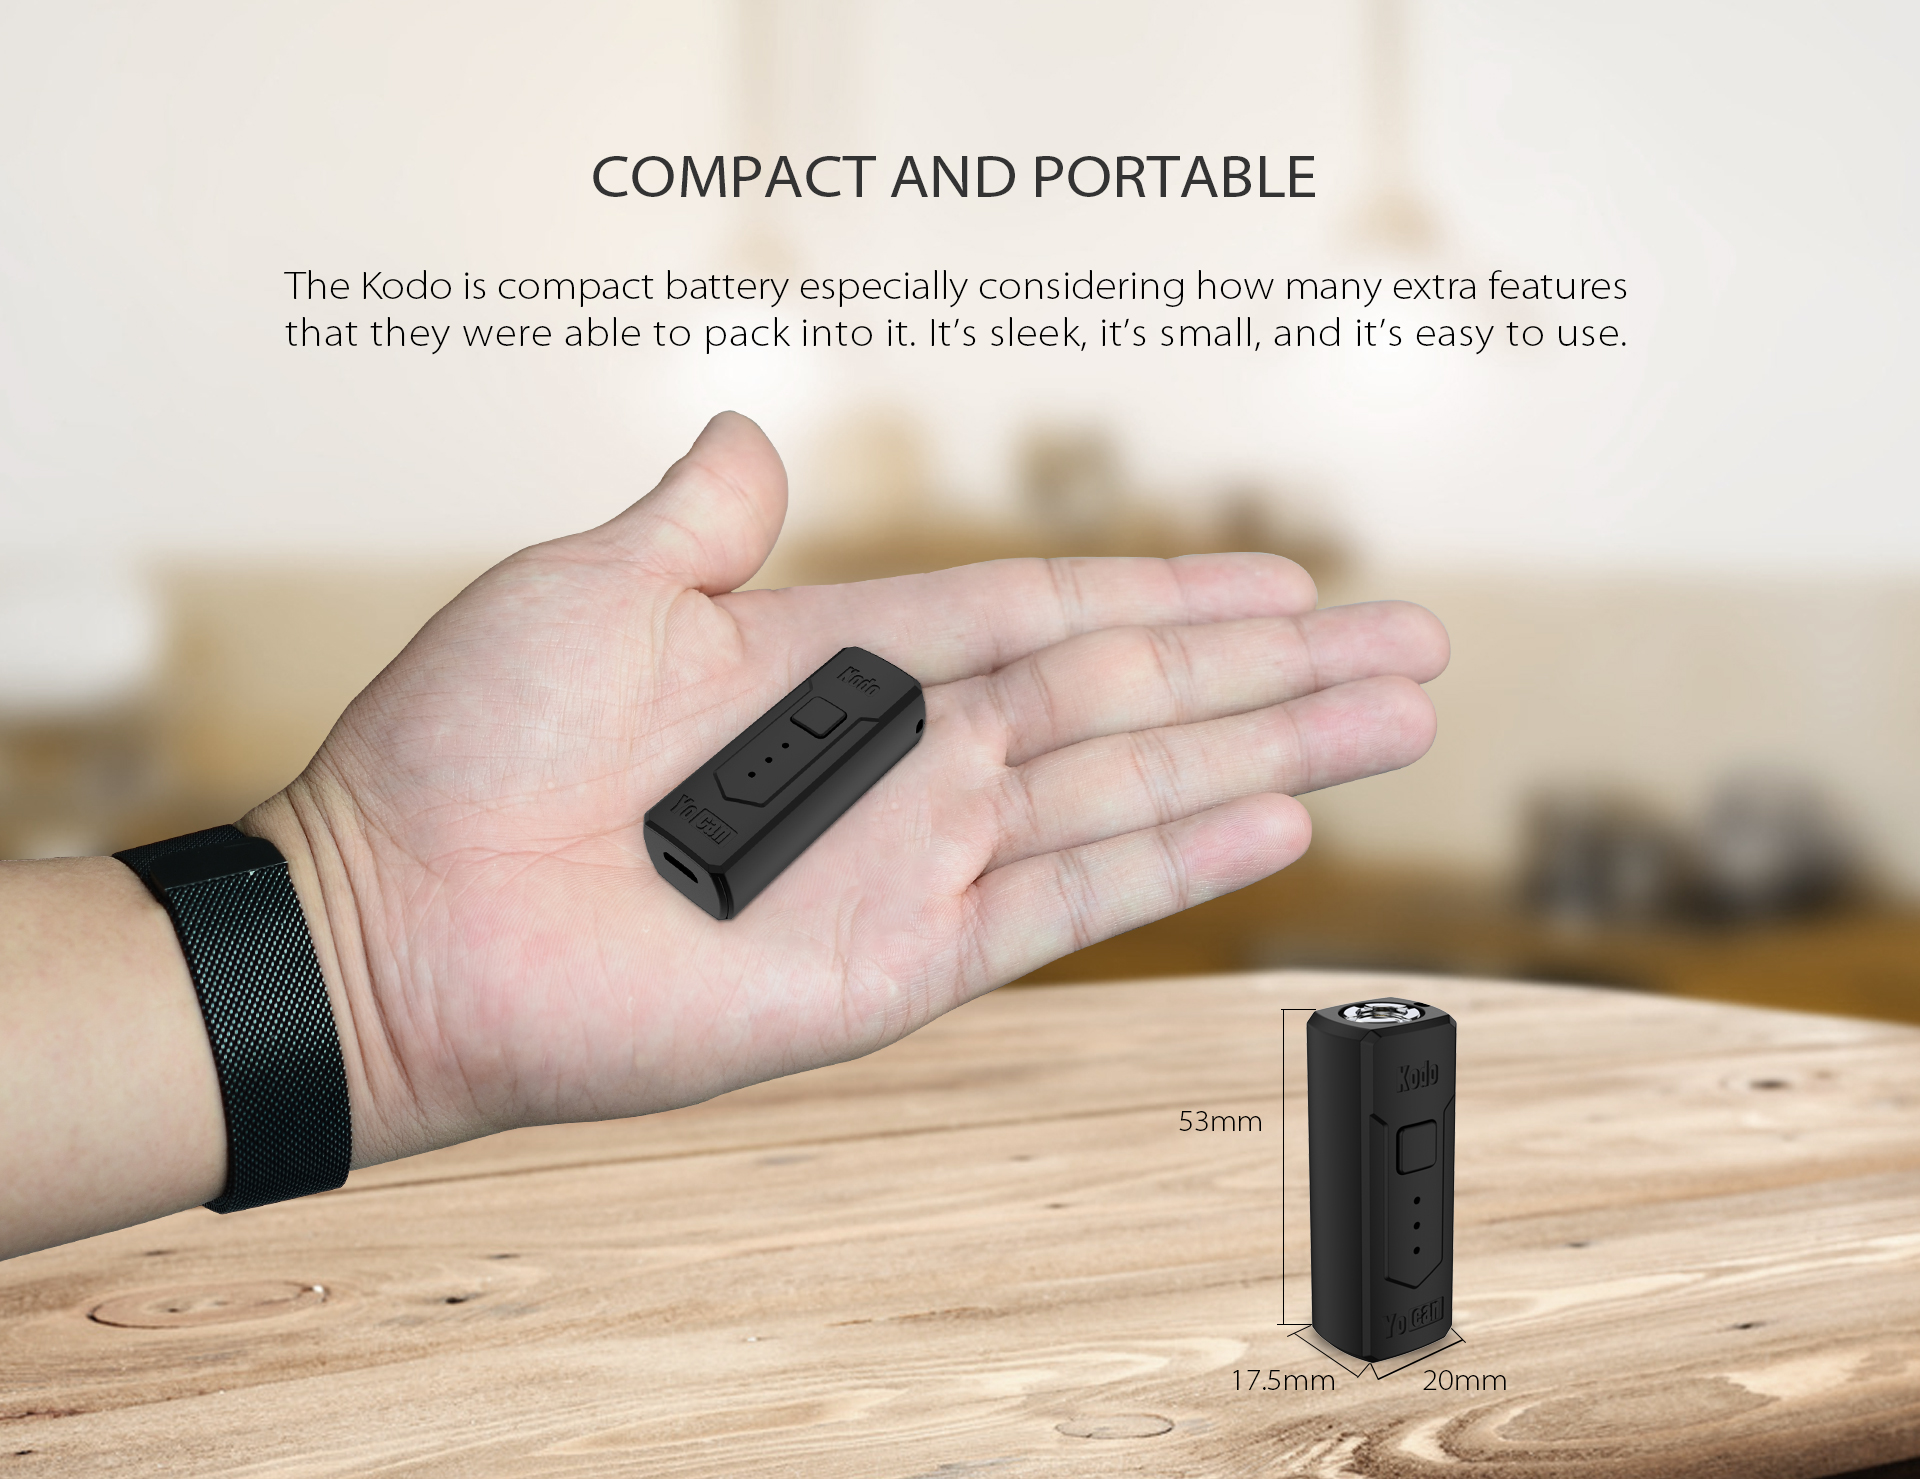 The Yocan Kodo Box Mod Battery is compact and portable.